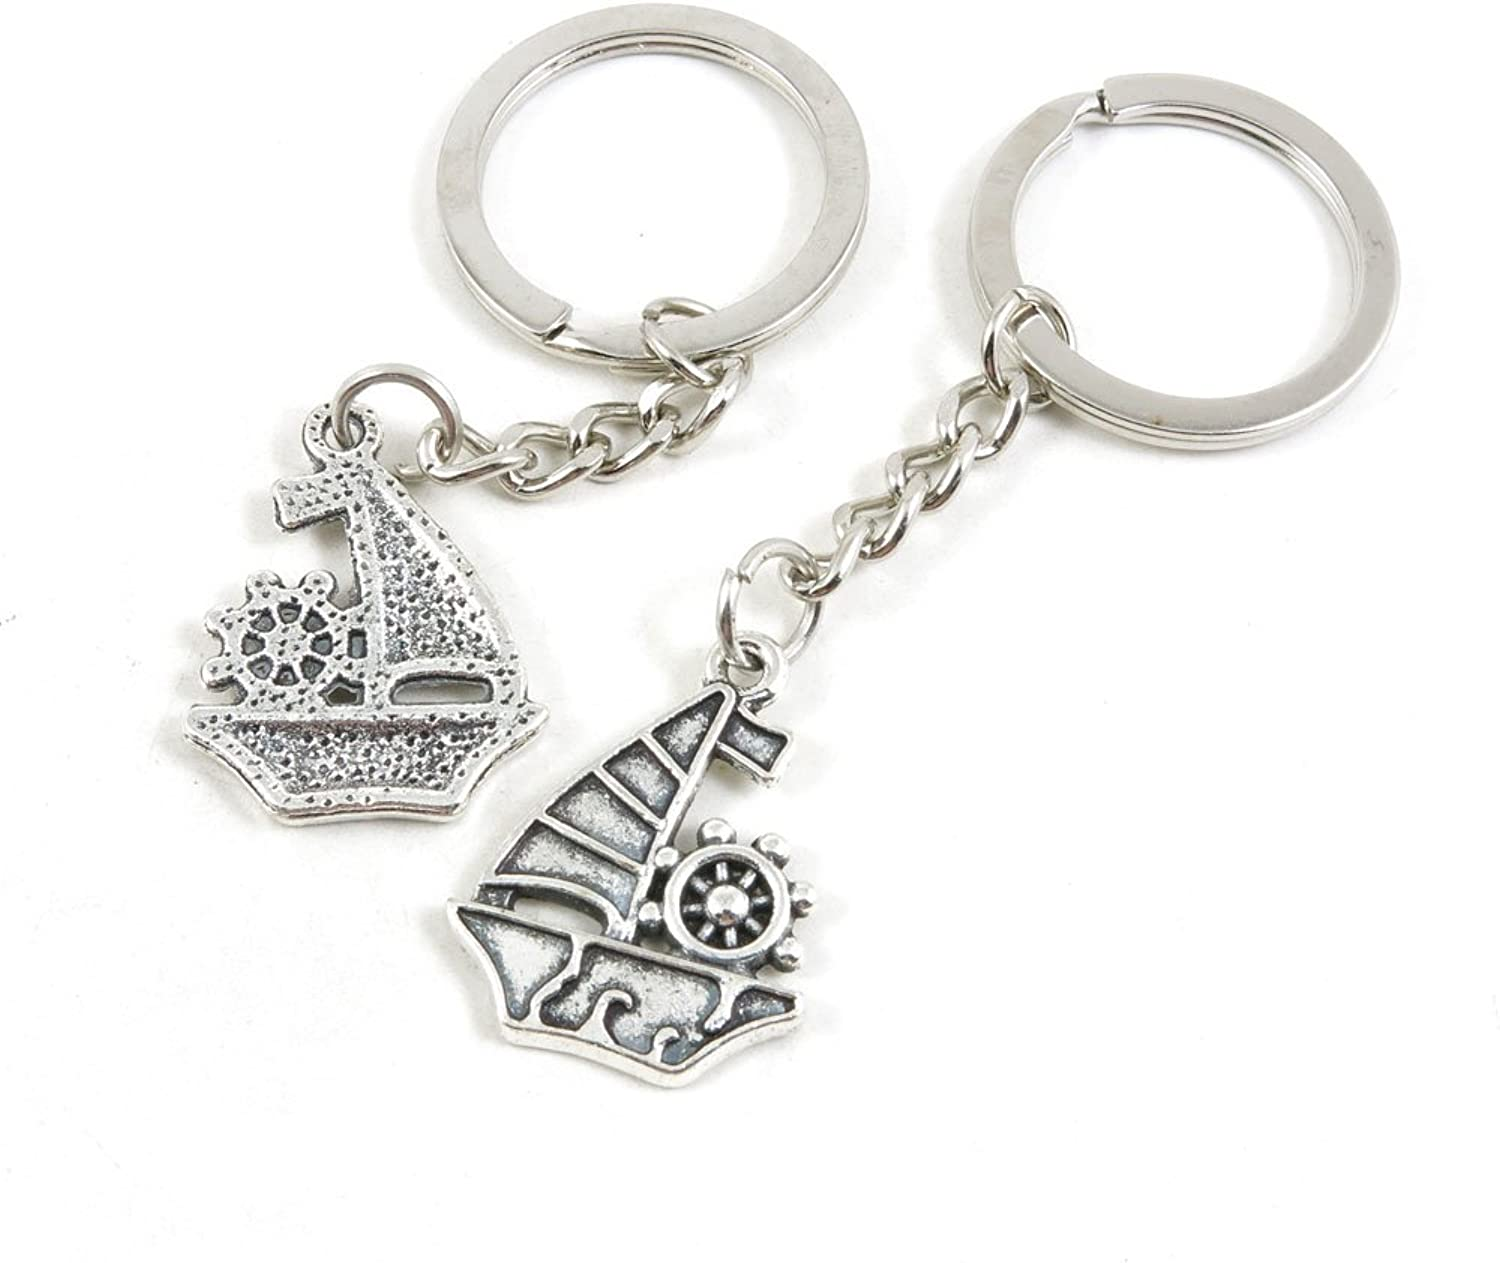 100 Pieces Keychain Keyring Door Car Key Chain Ring Tag Charms Bulk Supply Jewelry Making Clasp Findings M3WZ1V Sailboat Sailing Boat